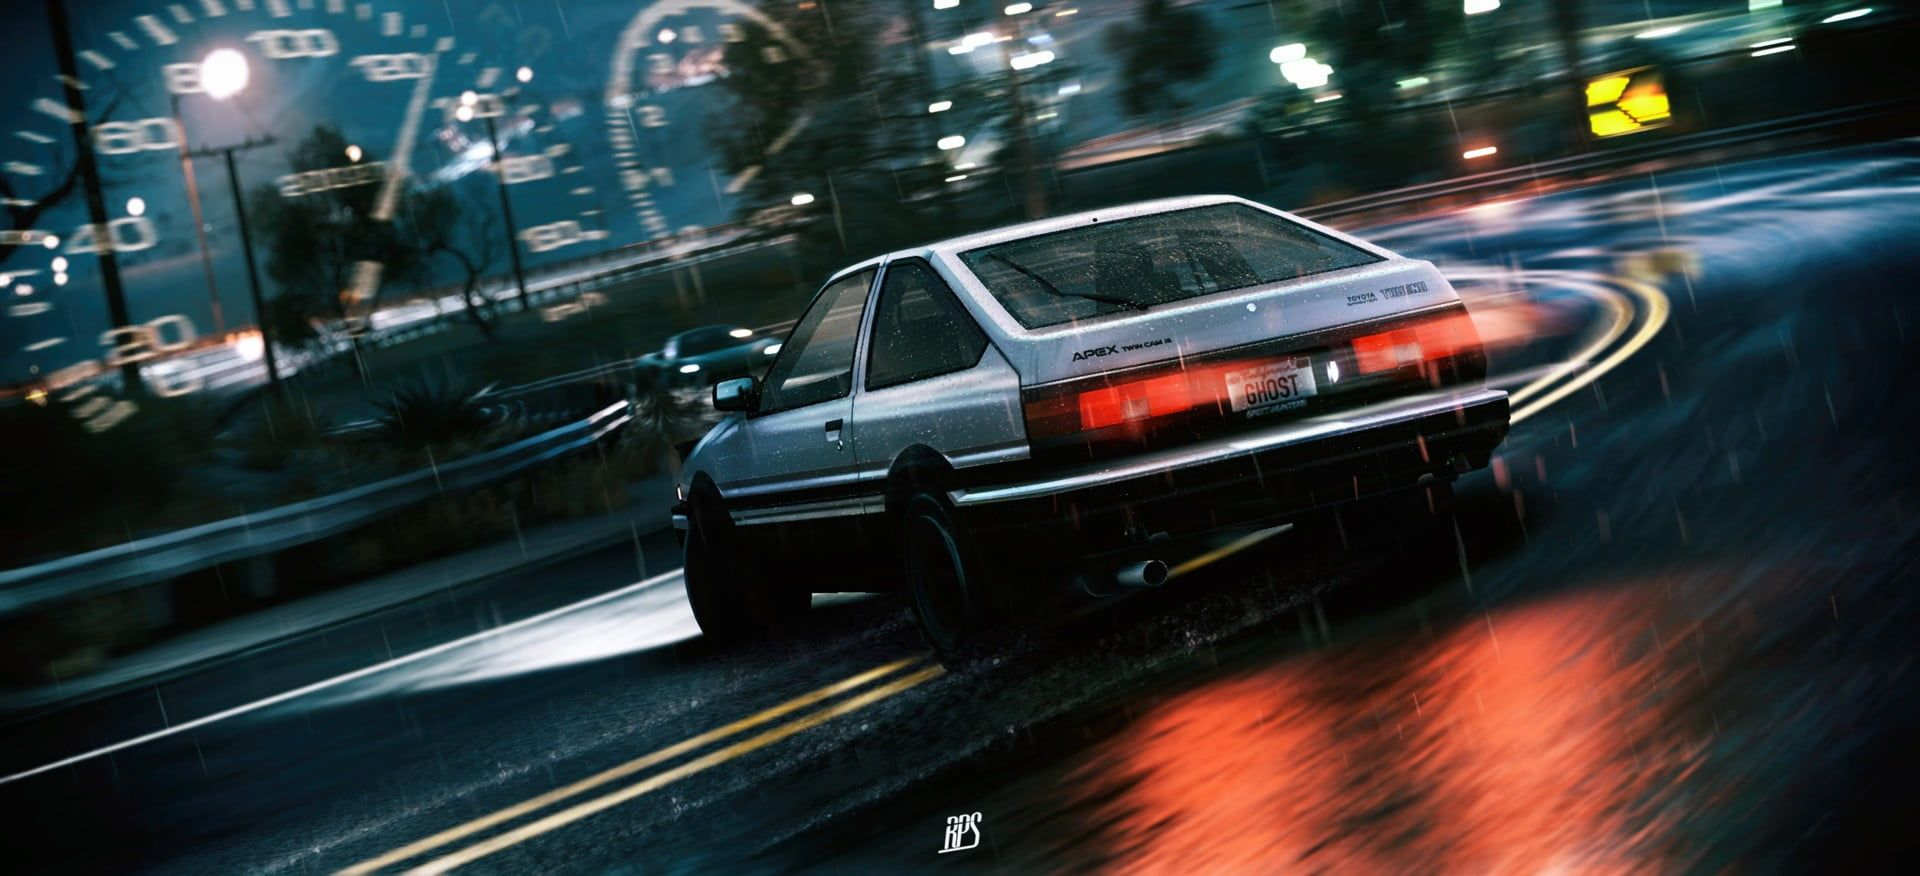 silver coupe car Initial D drift Toyota AE86 Toyota Sprinter 1920x876